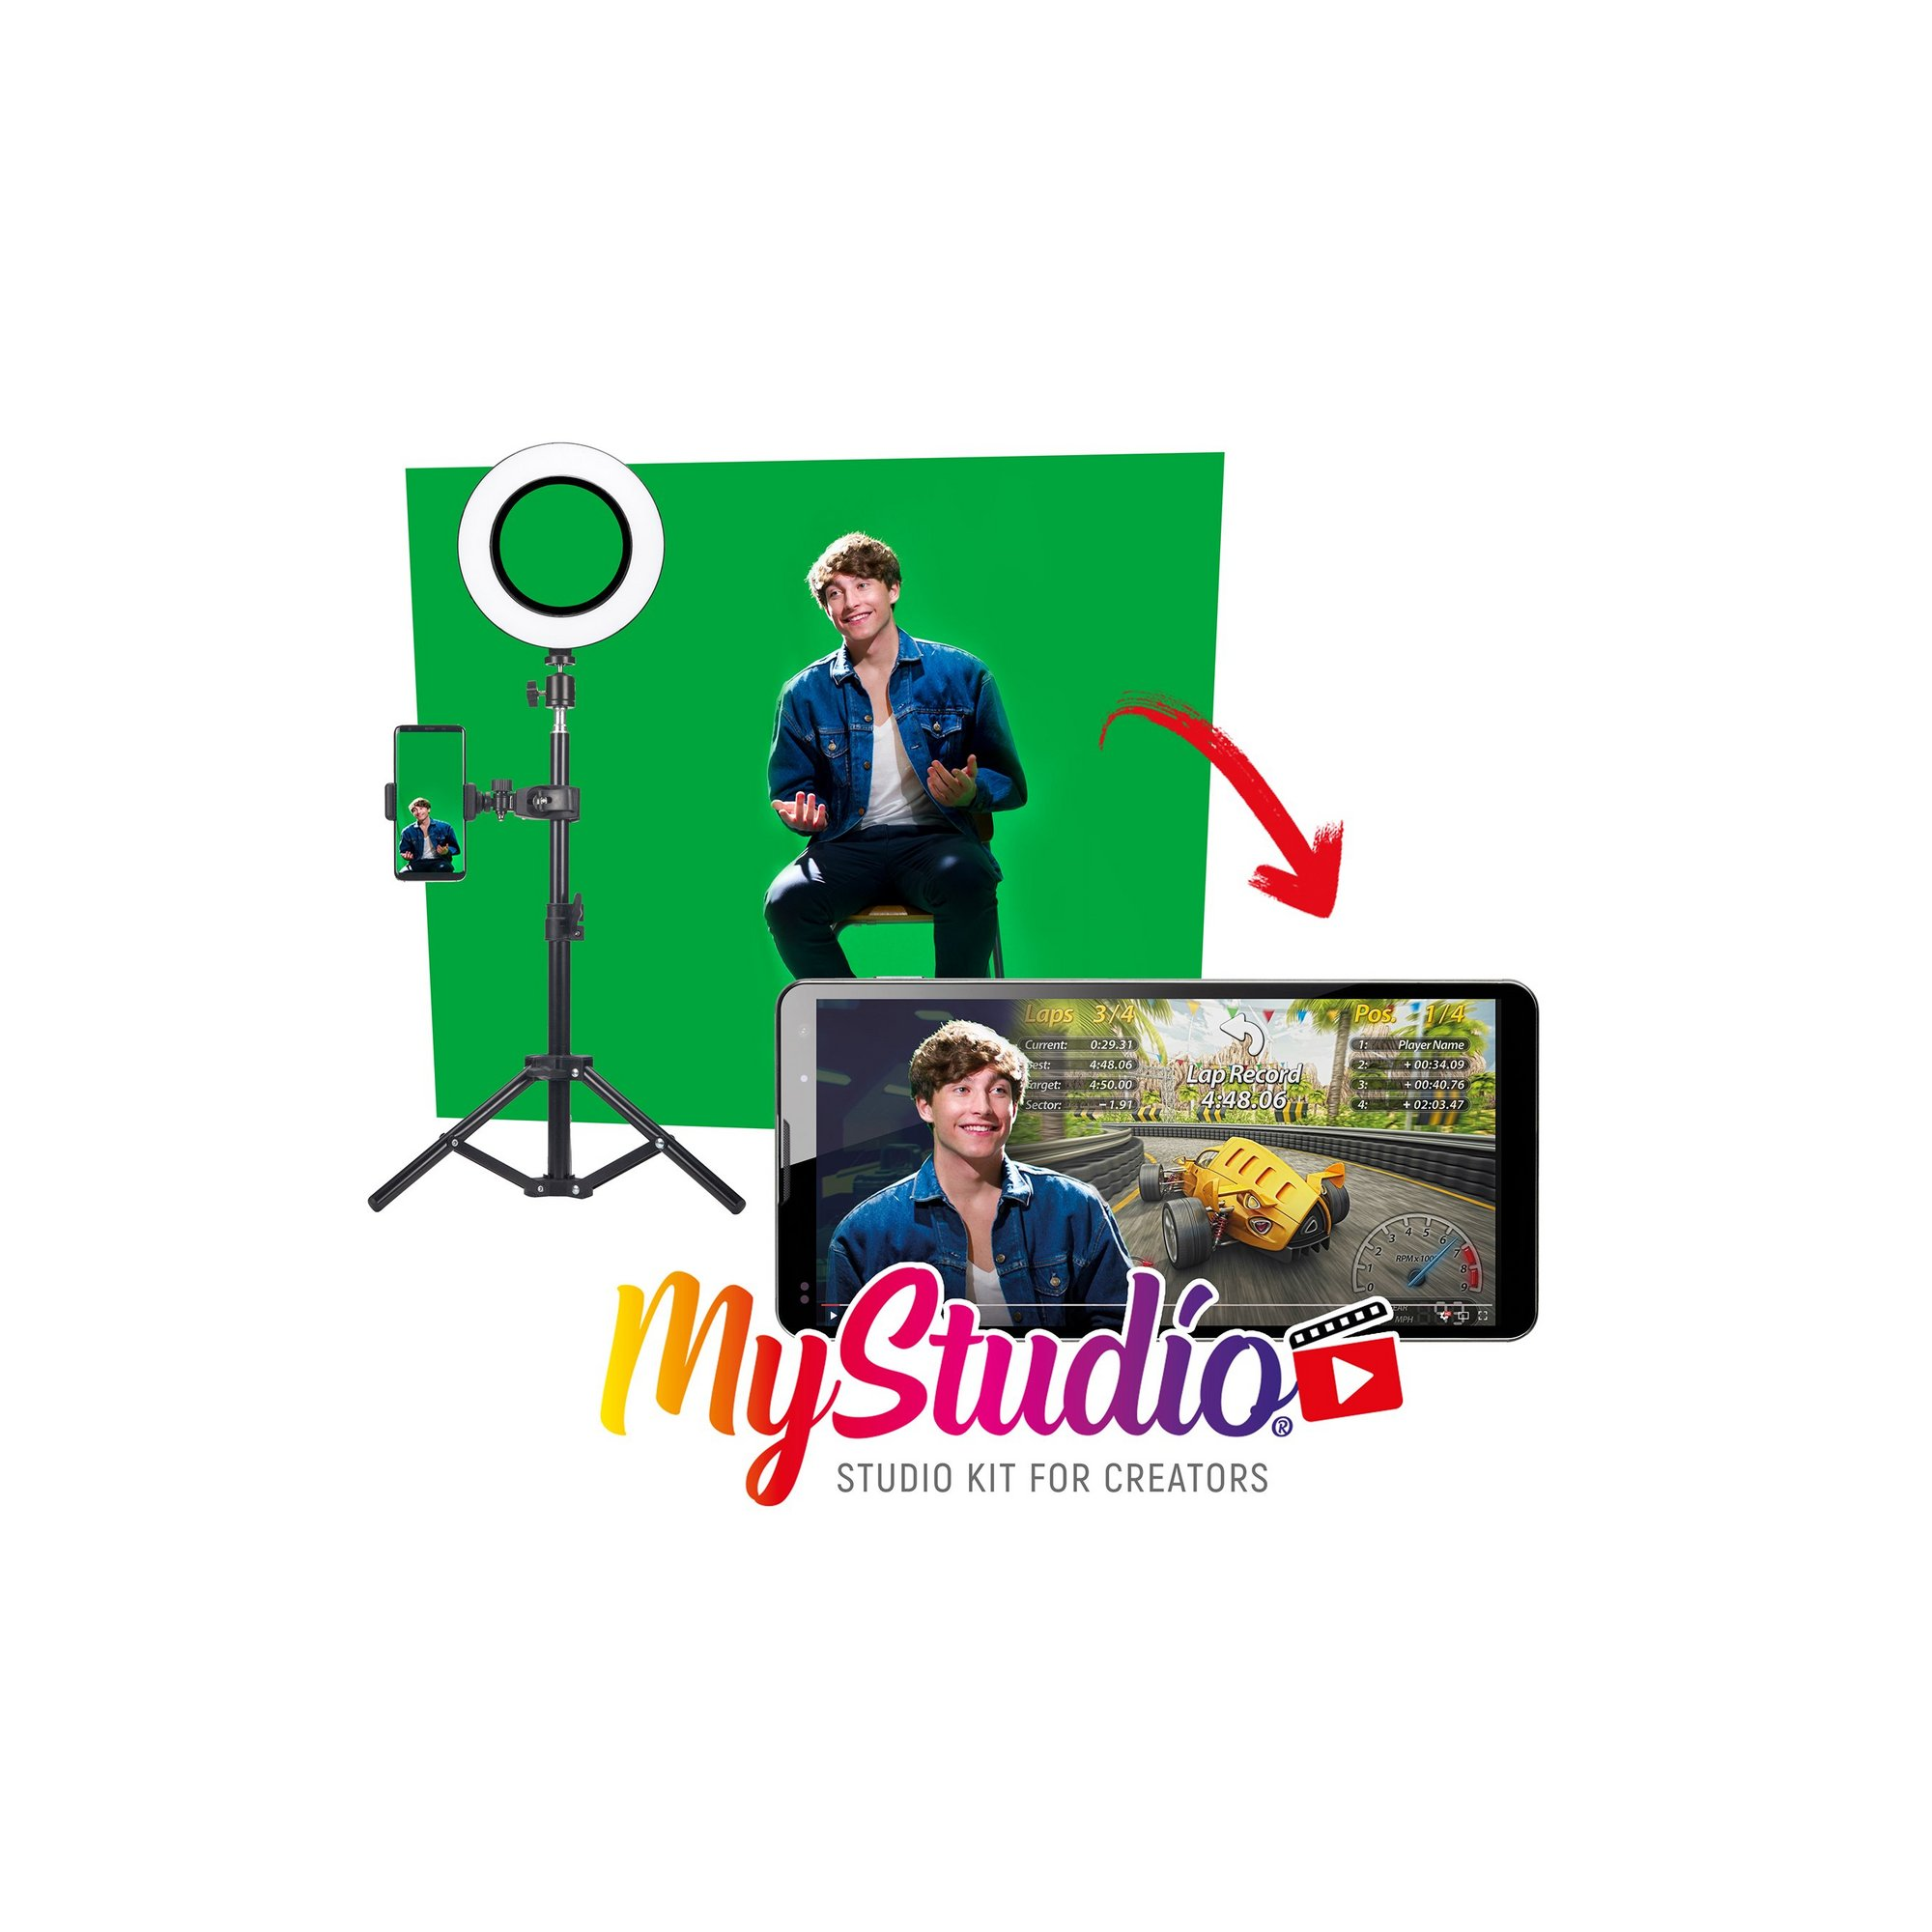 Image of MyStudio Video Shooting Studio Kit